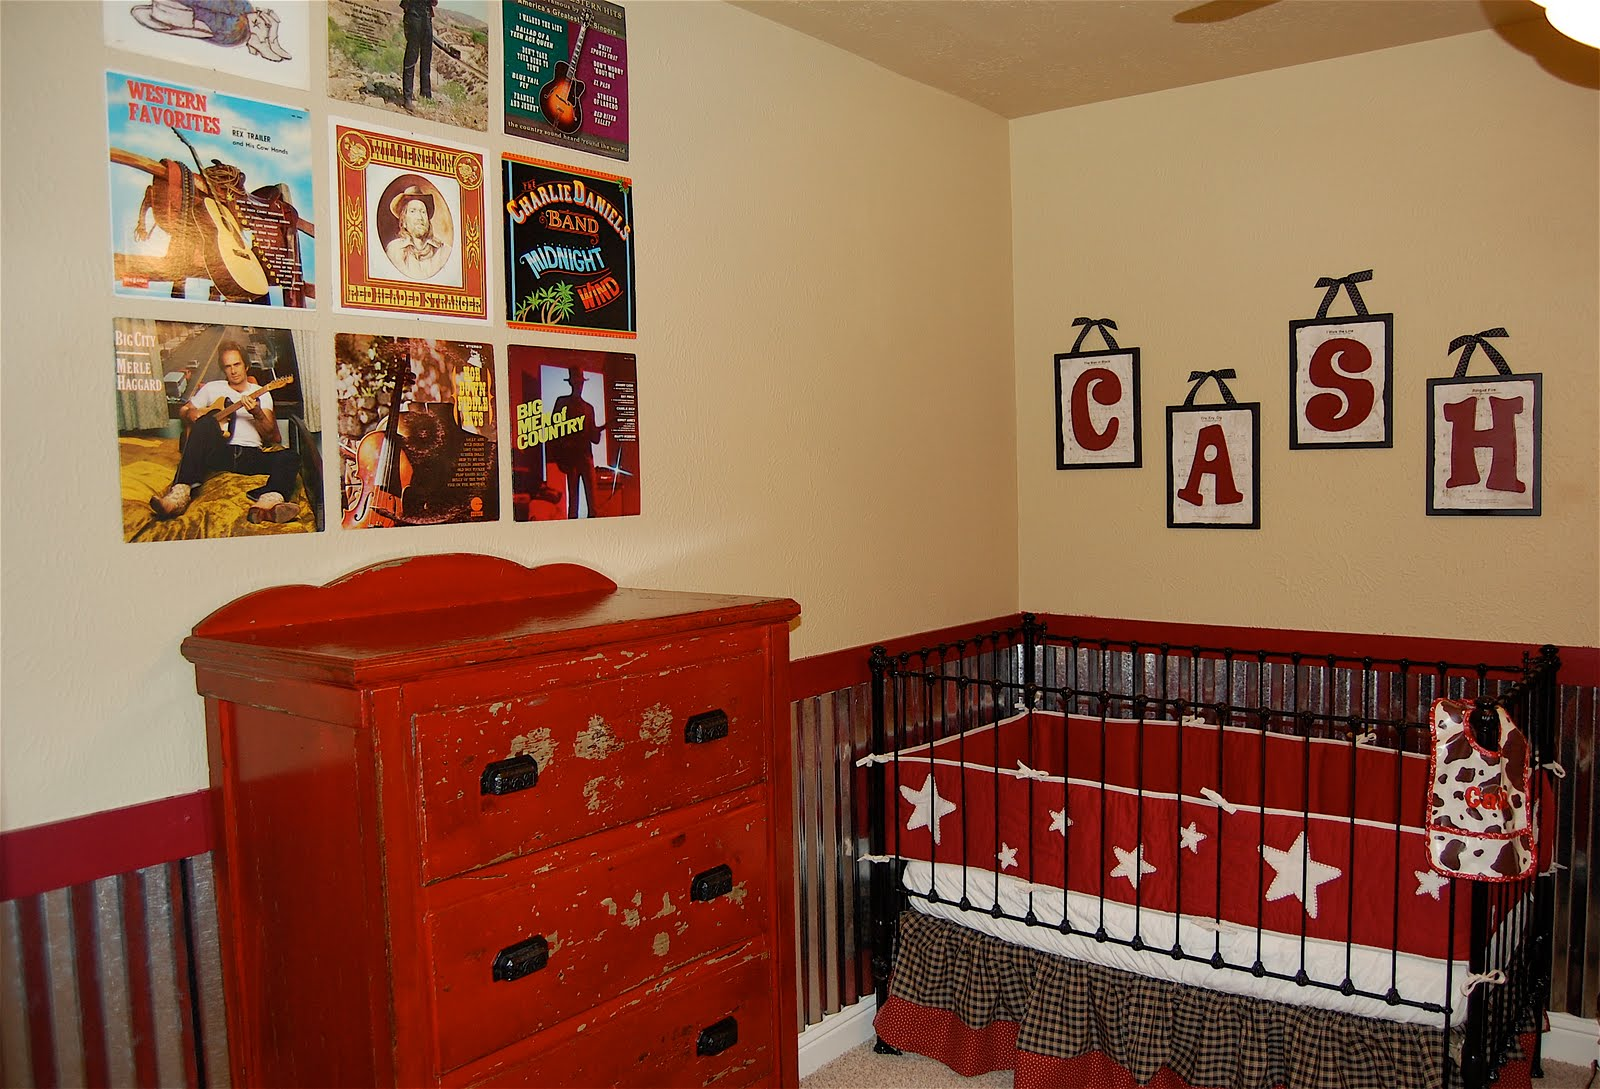 Cozy Design Of The Red Brown Bed Ideas Added With Red Brown Cabinets As The Nursery Room Ideas